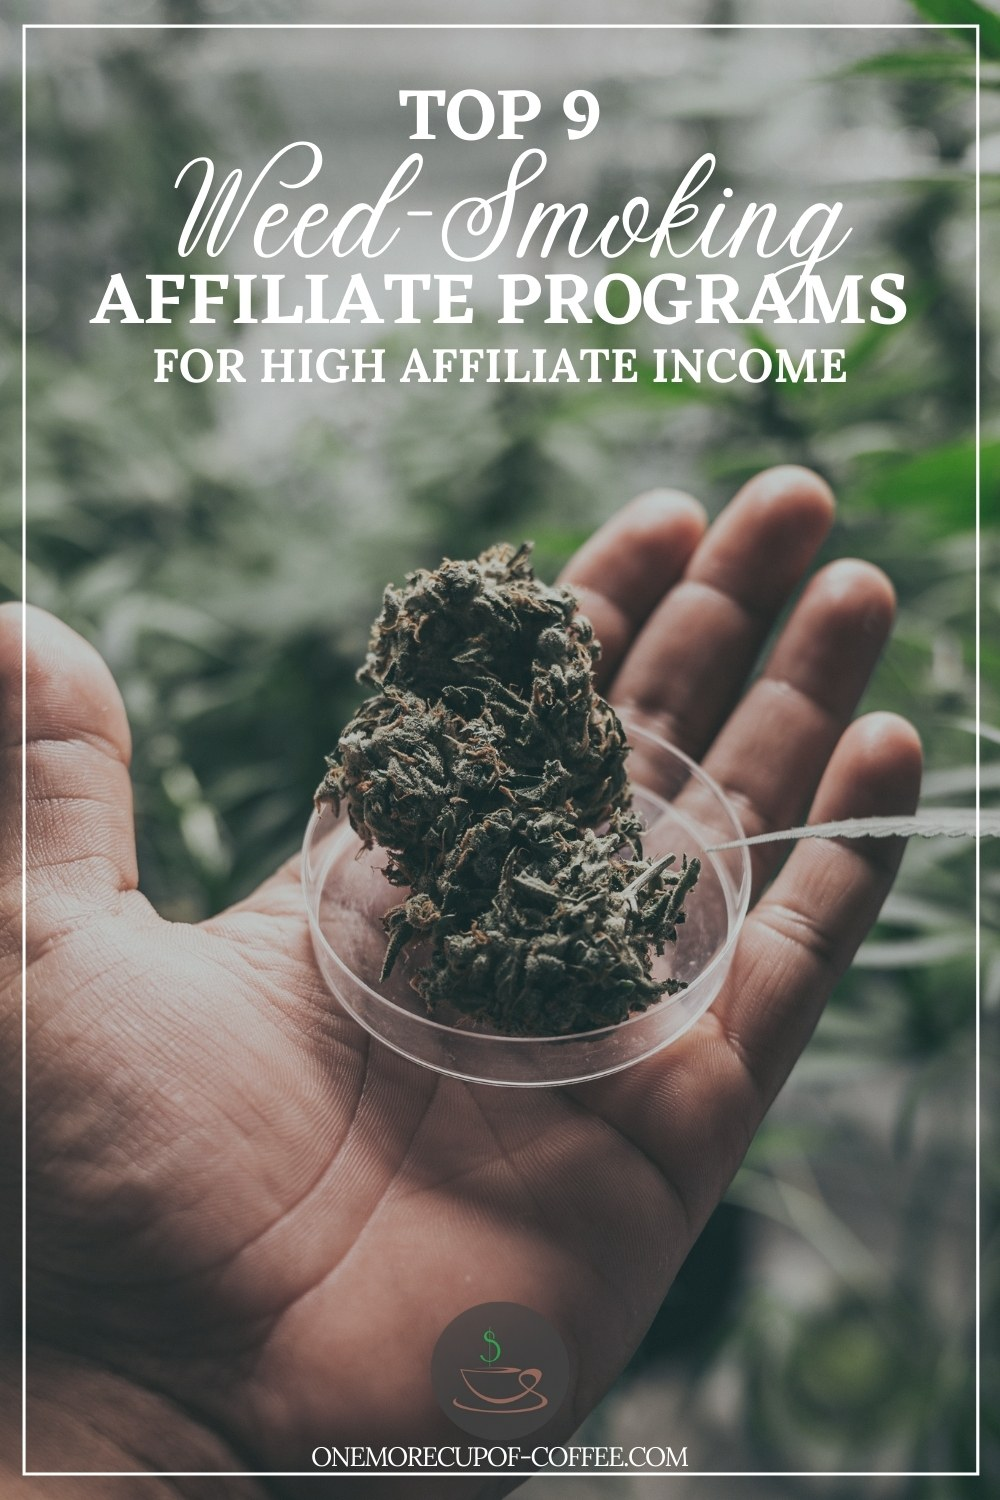 """closeup image of a hand holding a round transparent dish with dried marijuana leaves, with marijuana plants at the background; with text overlay """"Top 9 Weed-Smoking Affiliate Programs For High Affiliate Income"""""""